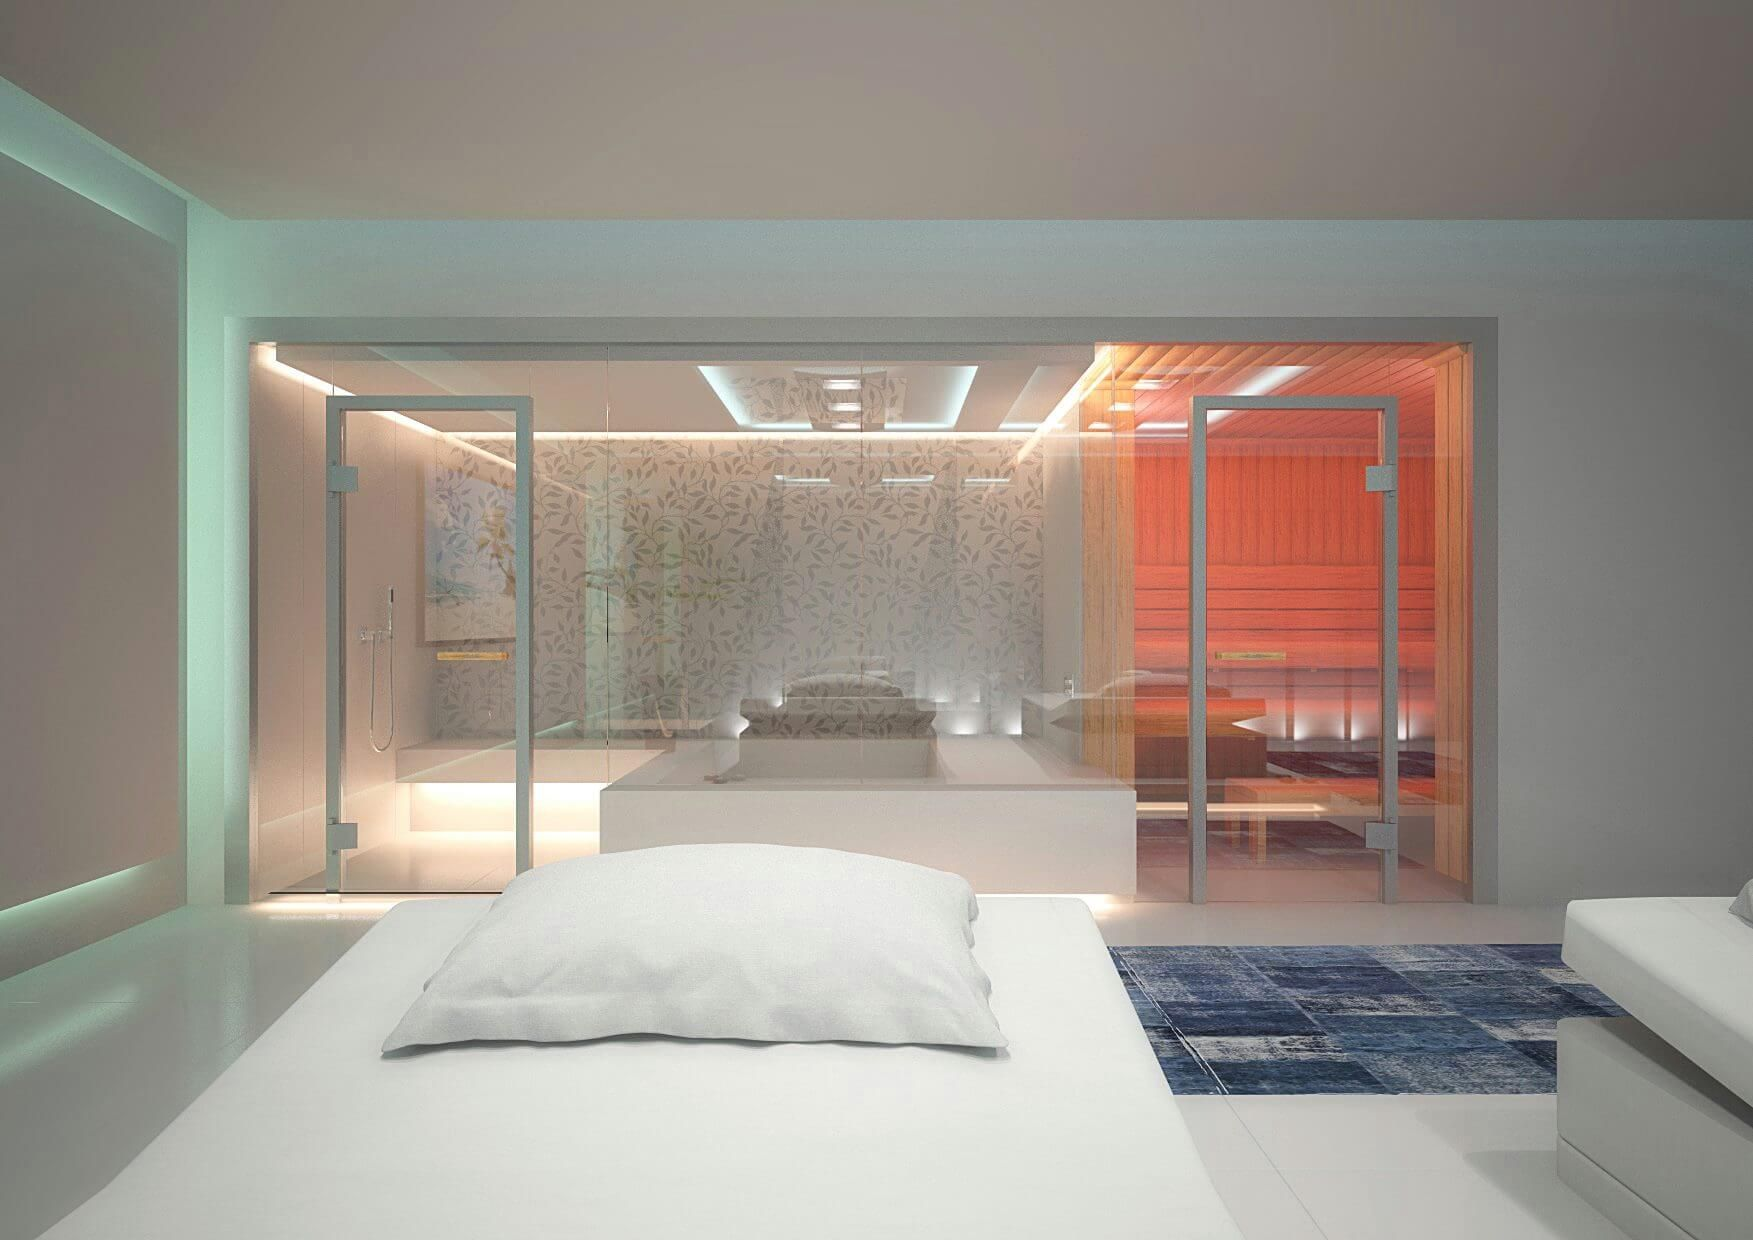 Heaven private Spa Design by Torsten Mueller Cologne 3D Artist Franz ...